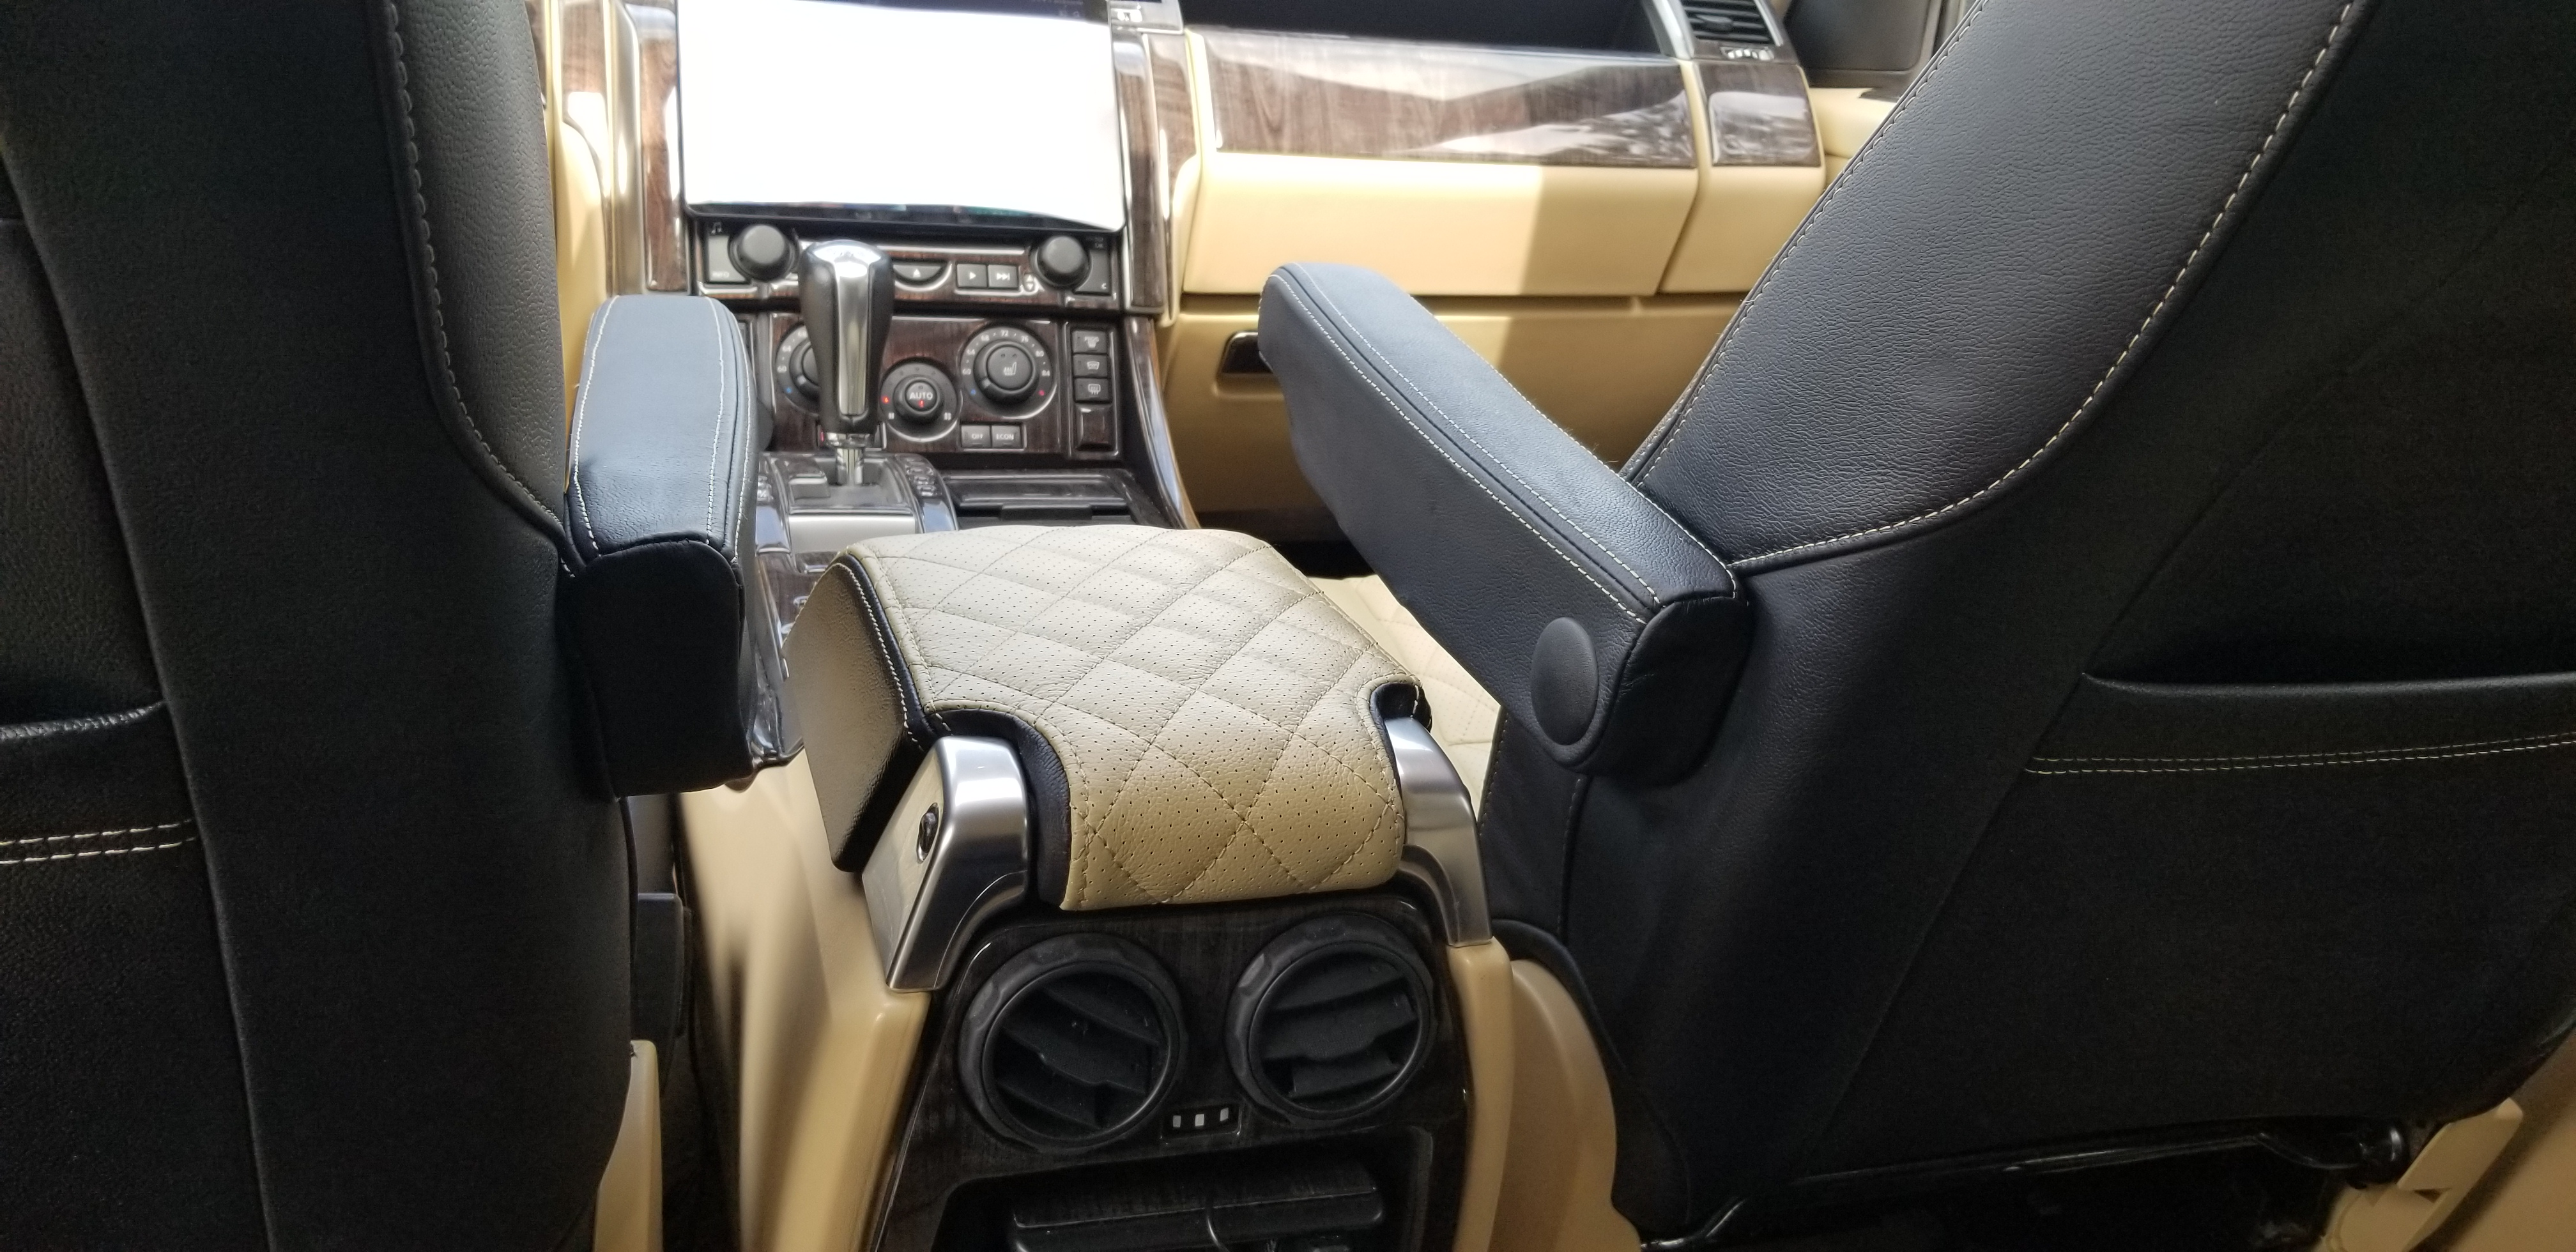 My 2009 Autobiography Conversion with Interior Included!..-rrs-autobiography-conversion-full-pics-videos_47806934511_o.jpg